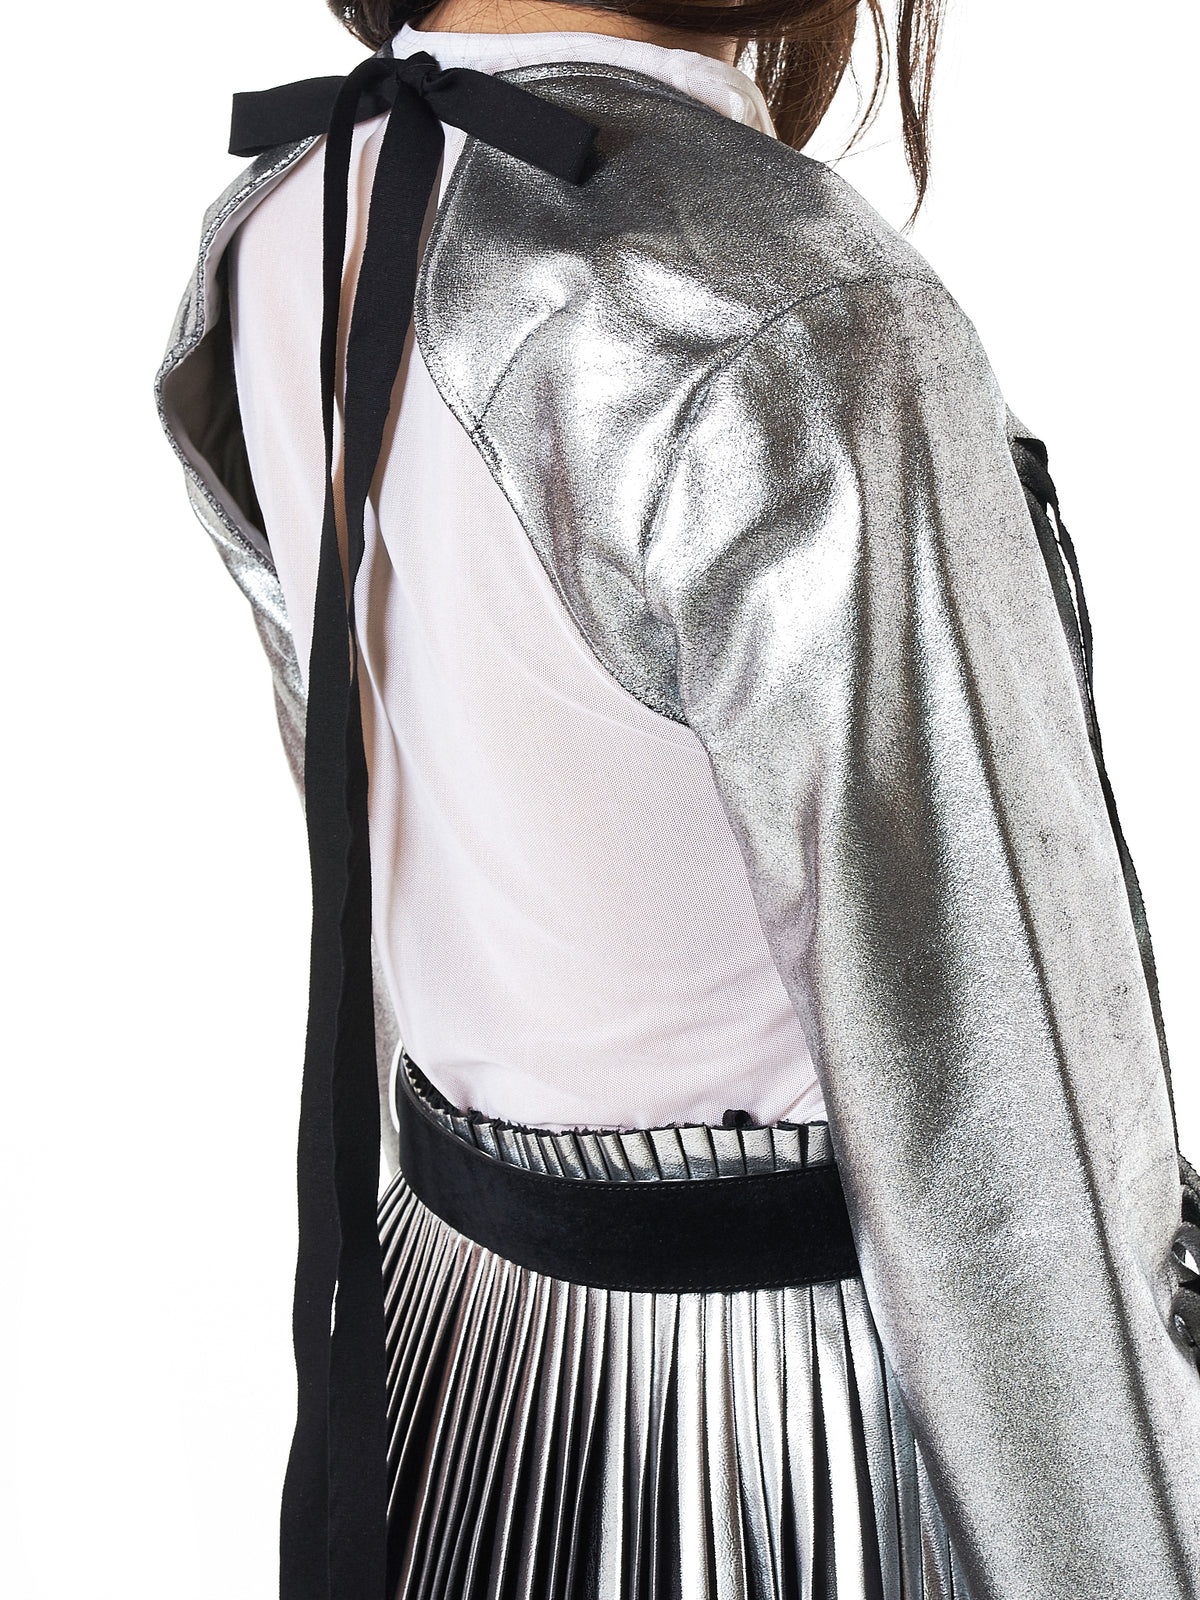 MM6 Maison Margiela Metallic Fringed Sleeves- Hlorenzo Detail 2